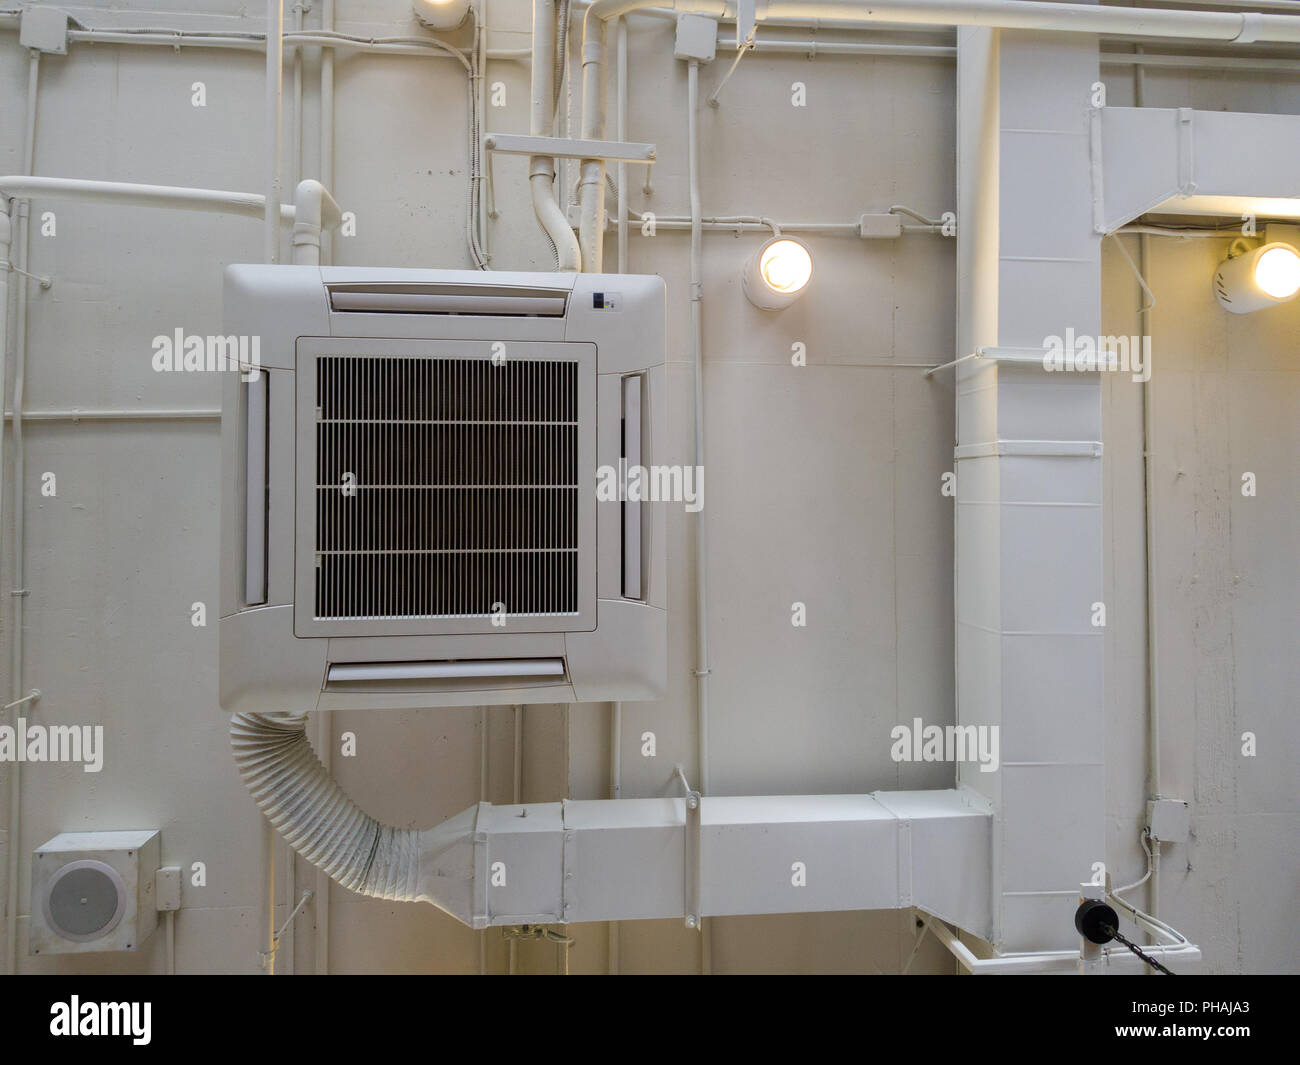 Ceiling Air Vent Stock Photos & Ceiling Air Vent Stock Images - Alamy